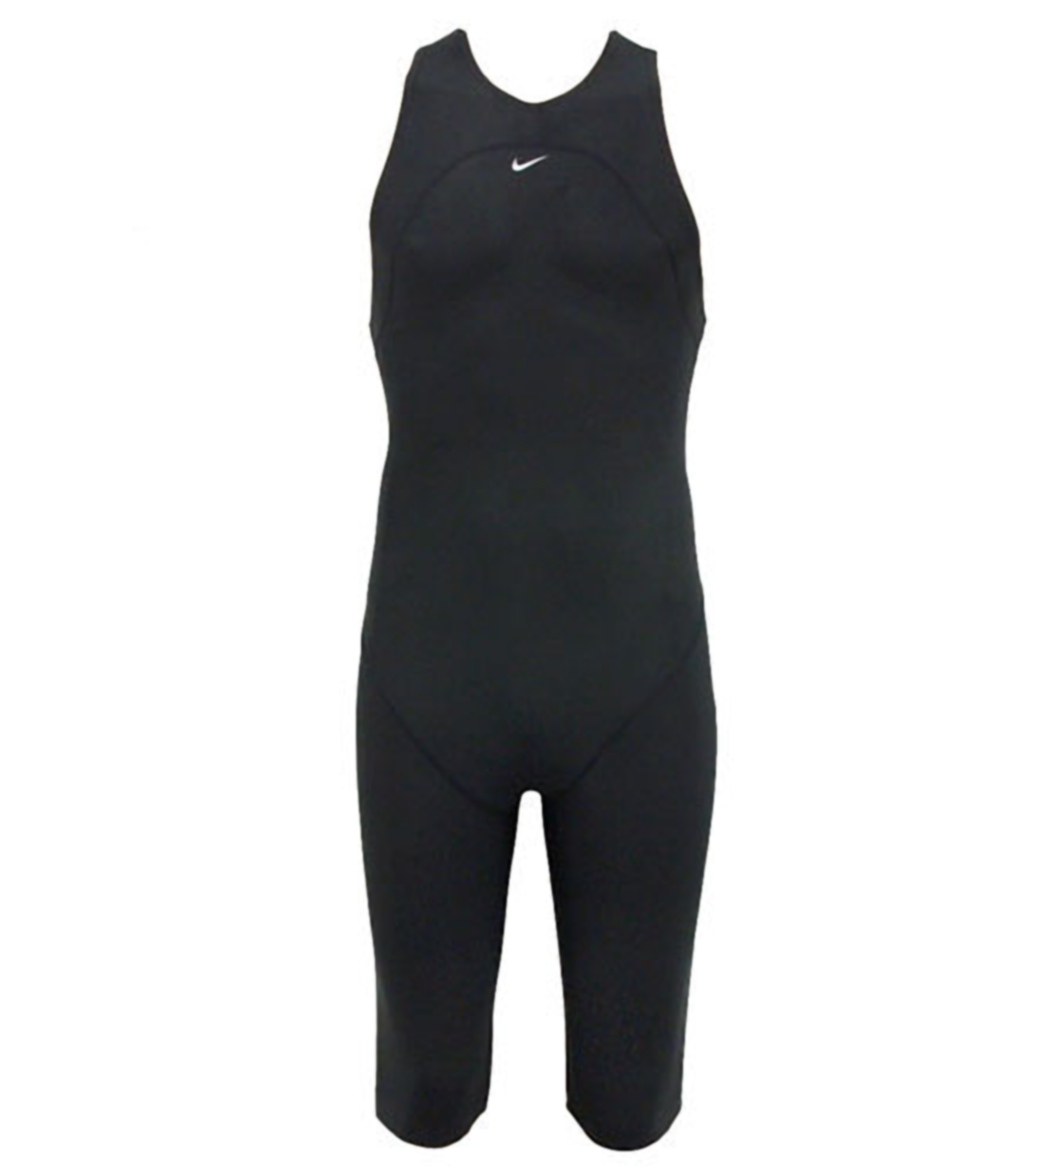 2f2ff02884 Nike Swim Hydra Men s Neck To Knee Tech Suit Swimsuit at SwimOutlet.com -  Free Shipping